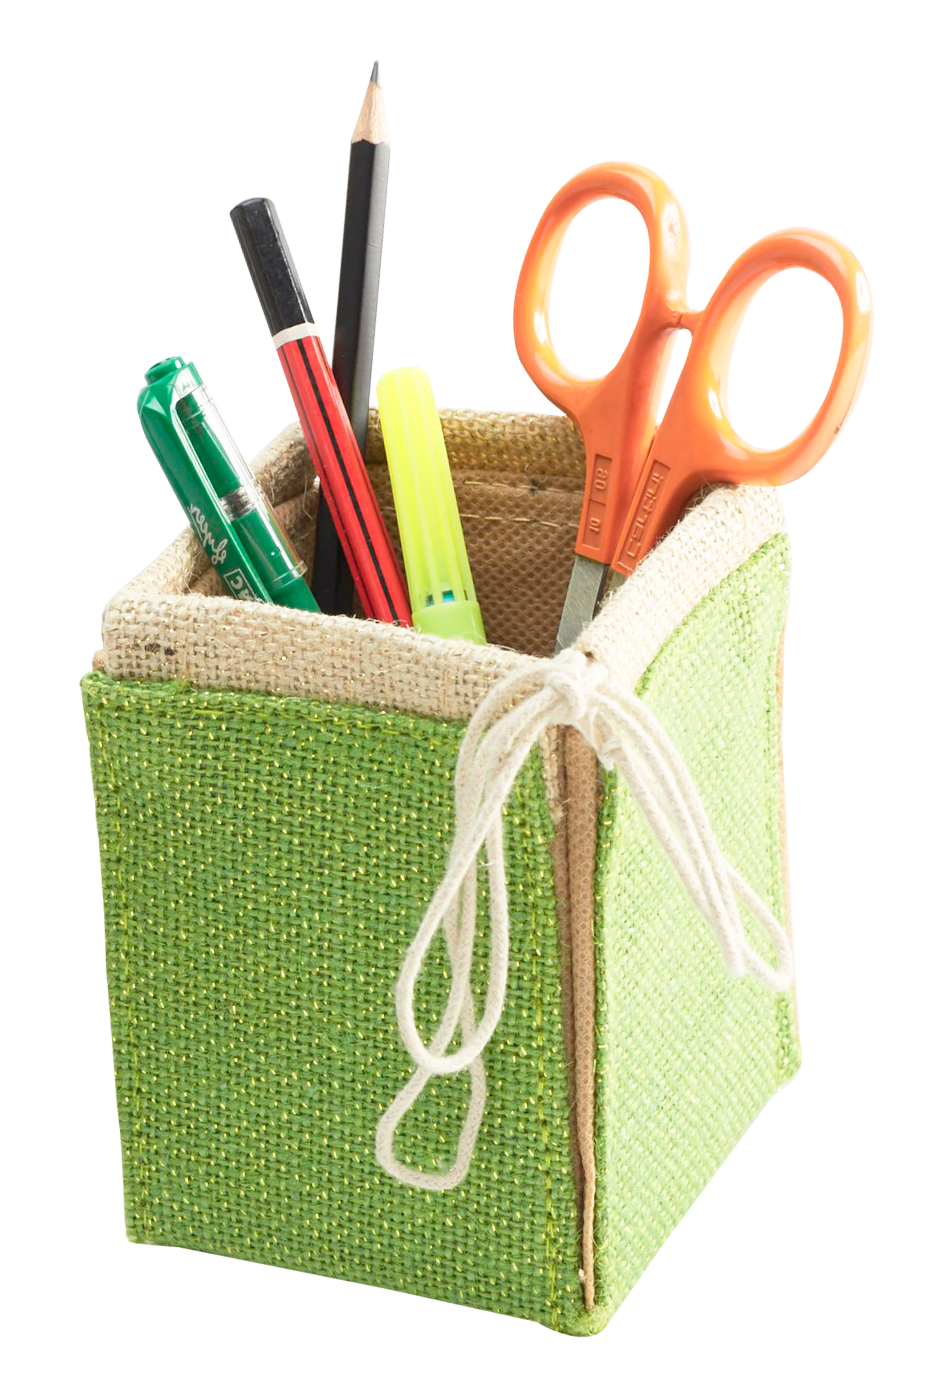 Pen Stand PNG Image Png images, Pen, Image